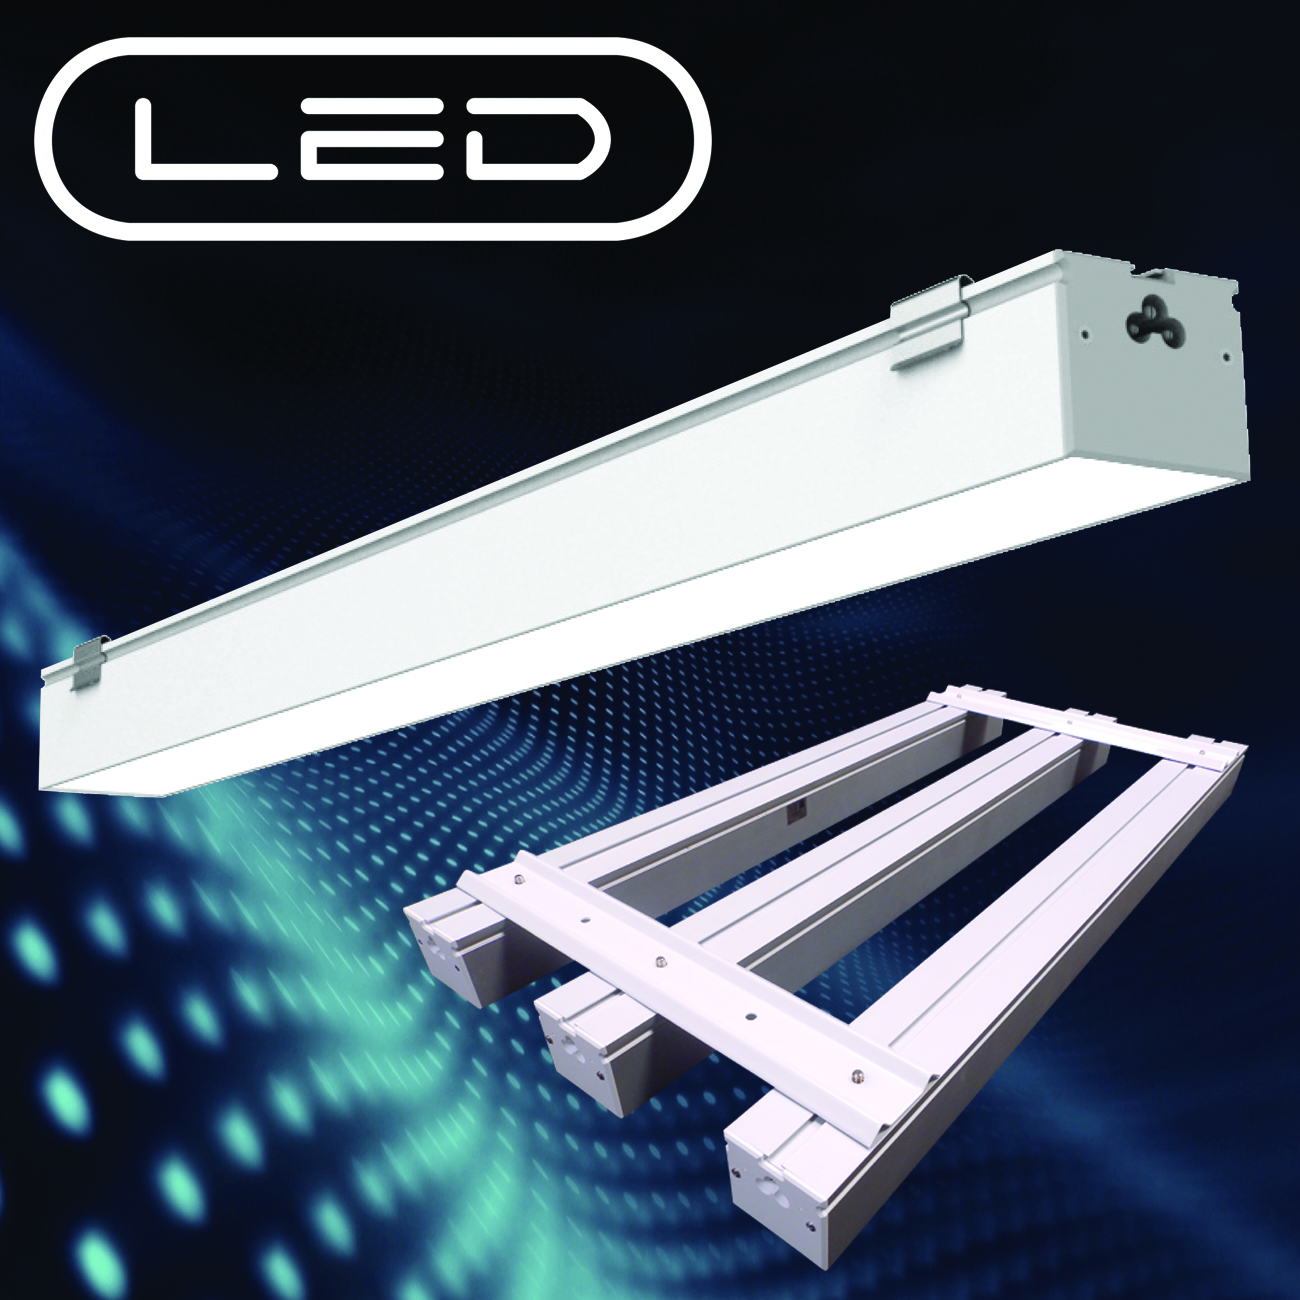 Lamar Configurable Narrow Linear Led Luminaire Commercial Construction And Renovation